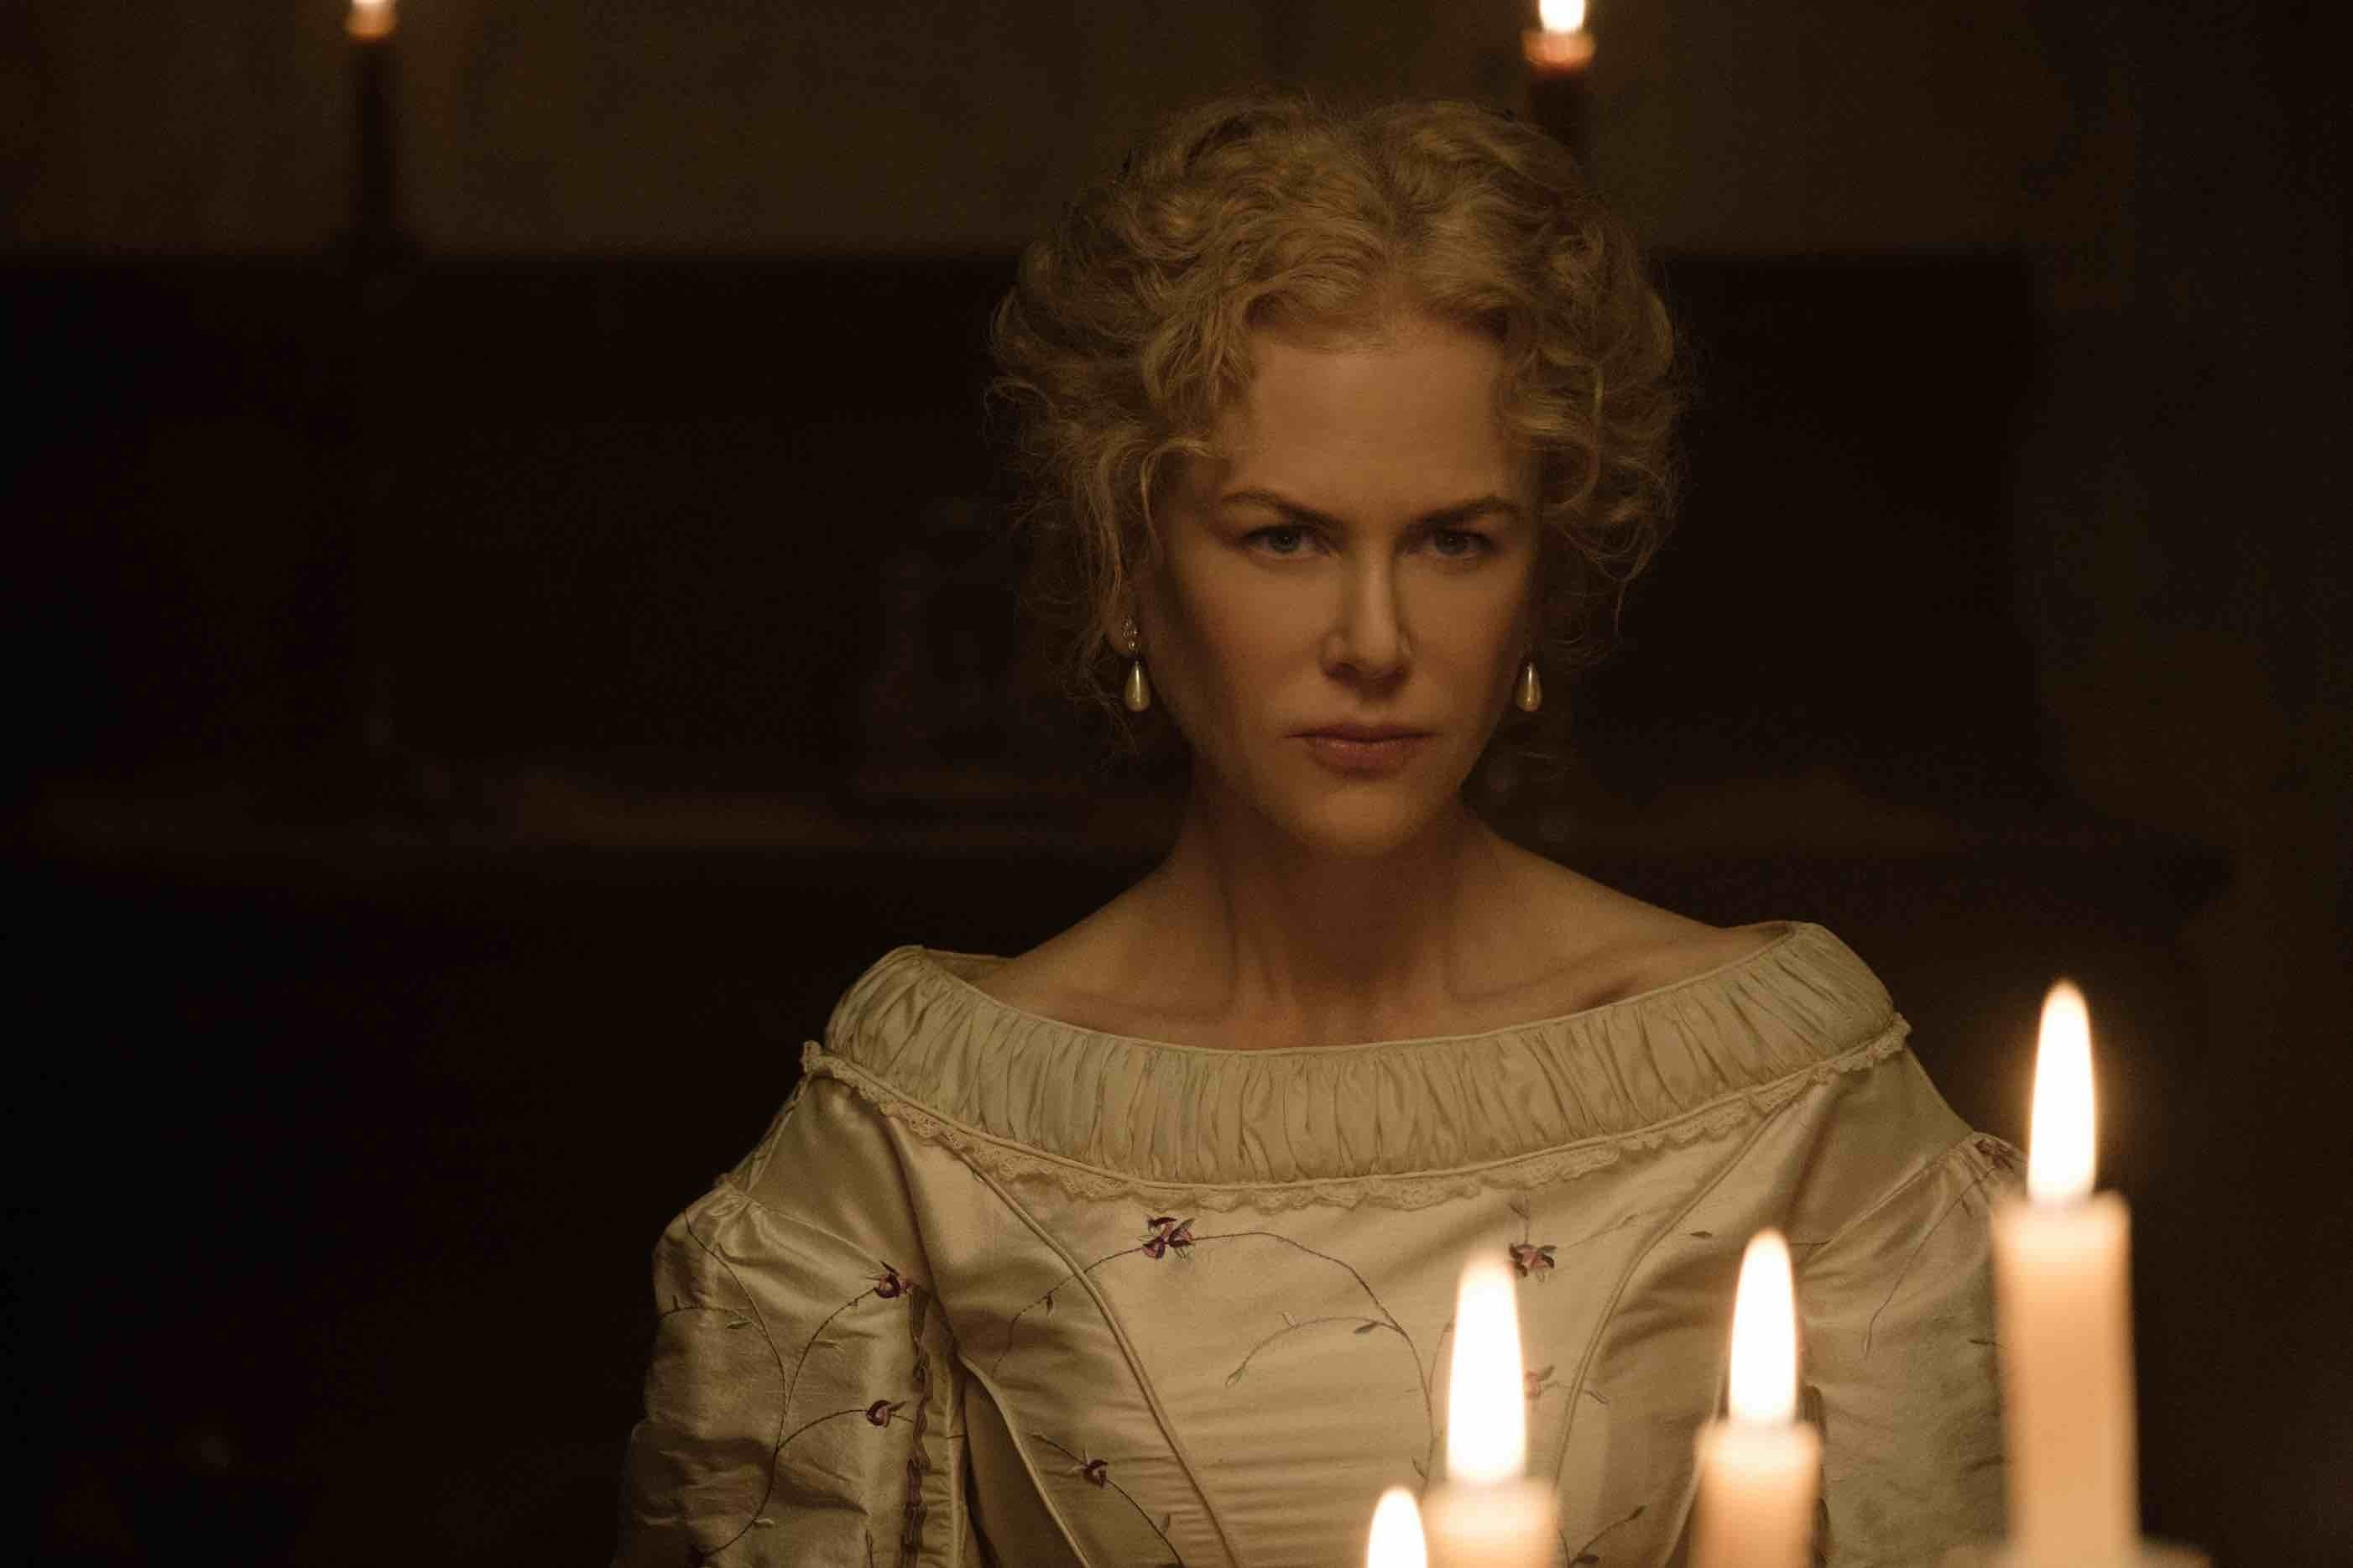 Nicole Kidman Reveals the 'Disturbing' Thing That Happened While Making 'The Undoing'